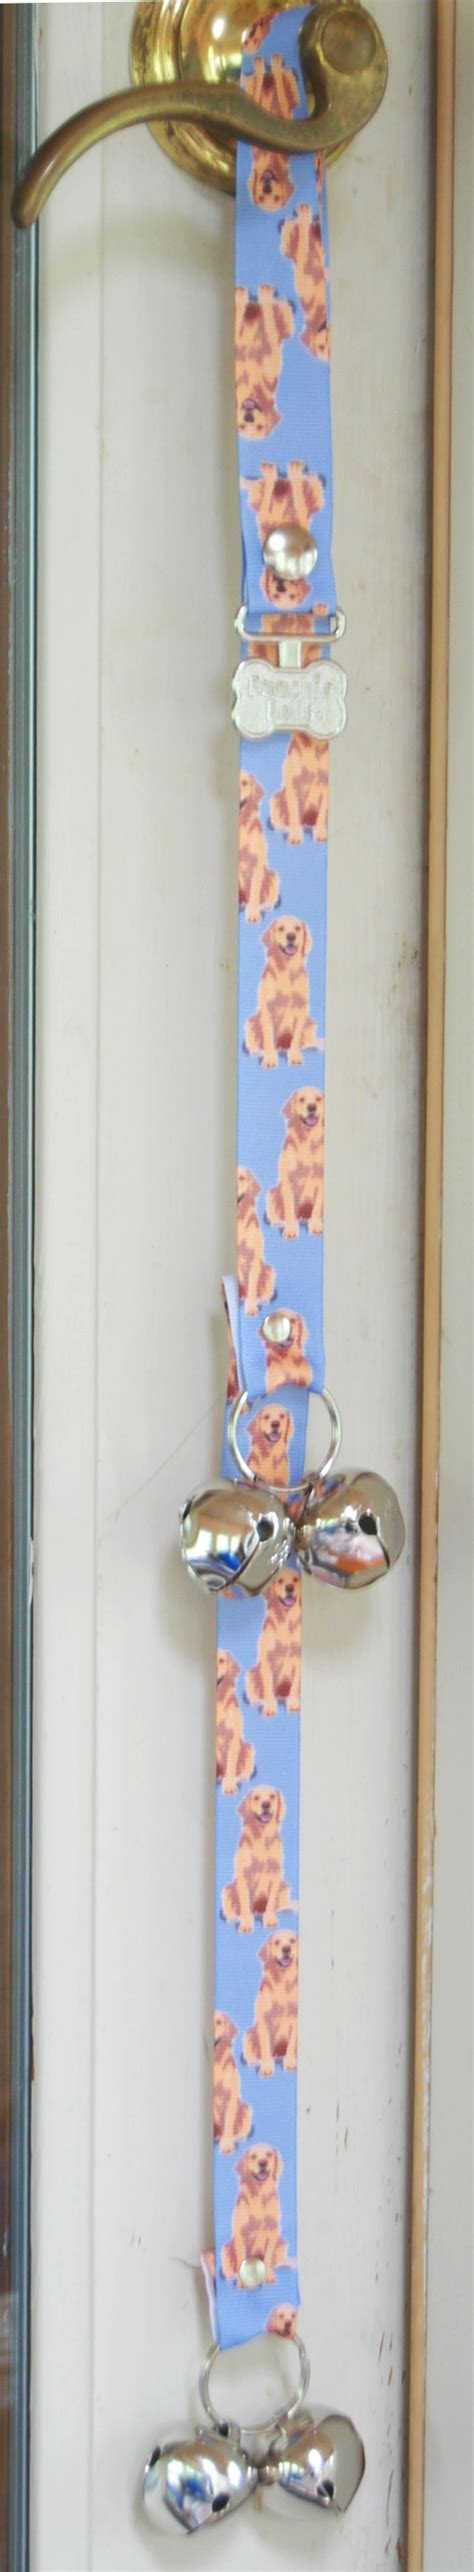 golden retriever puppy potty golden retriever puppy potty doorbells poochie bells